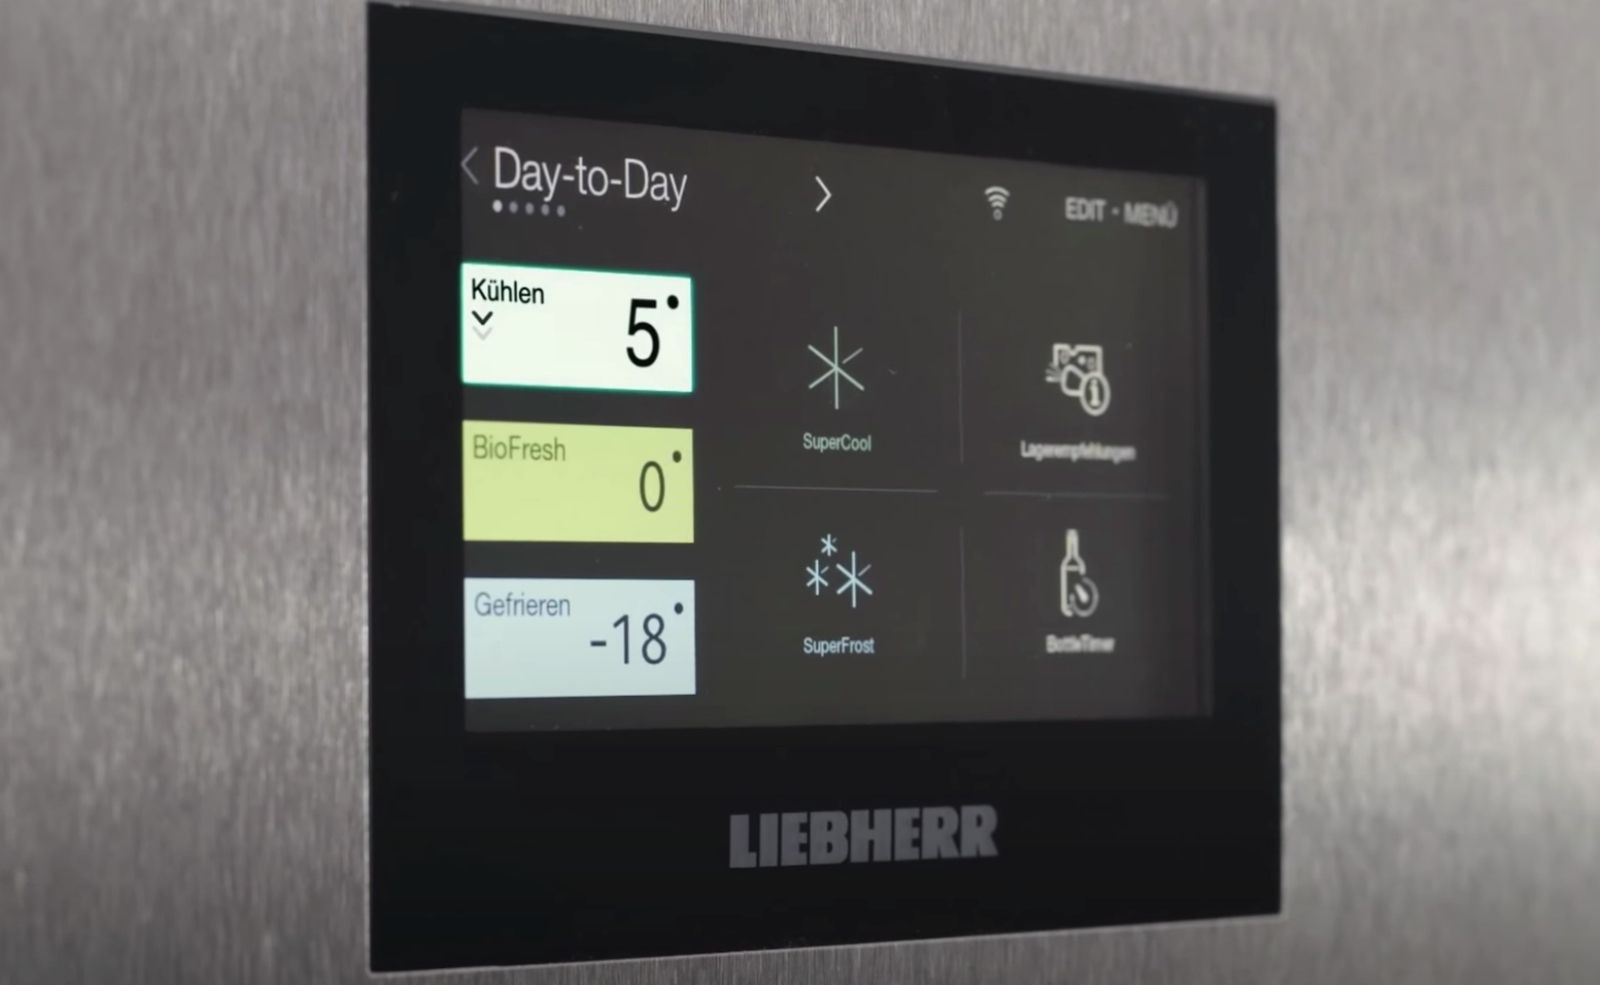 liebherr smart device